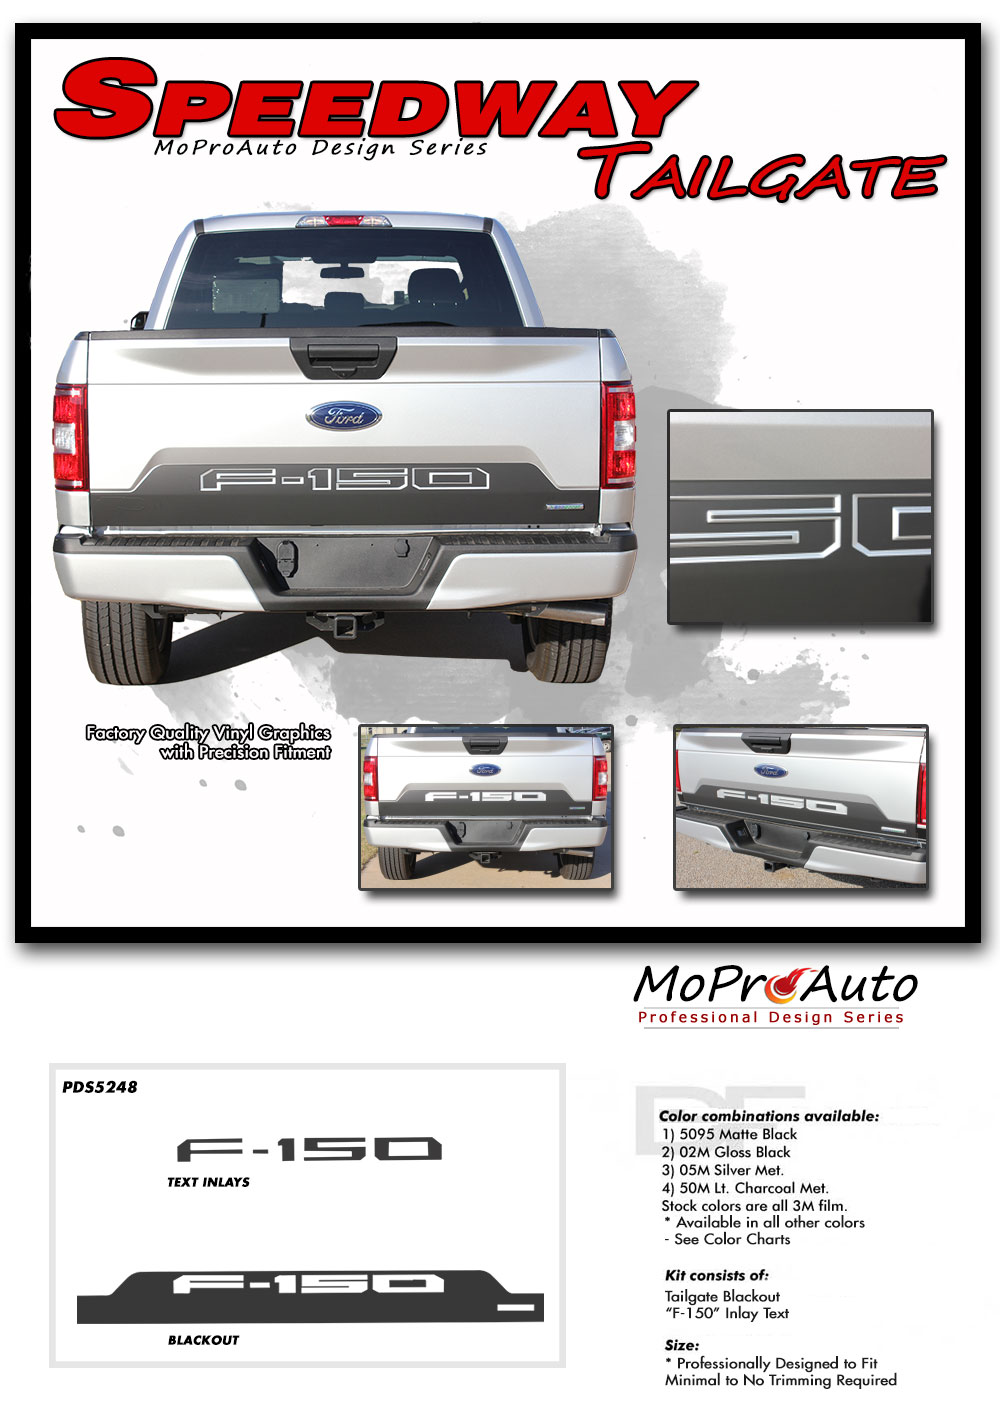 2018 SPEEDWAY TAILGATE and TEXT INLAYS Solid Ford F-Series F-150 Appearance Package Vinyl Graphics and Decals Kit by MoProAuto Pro Design Series